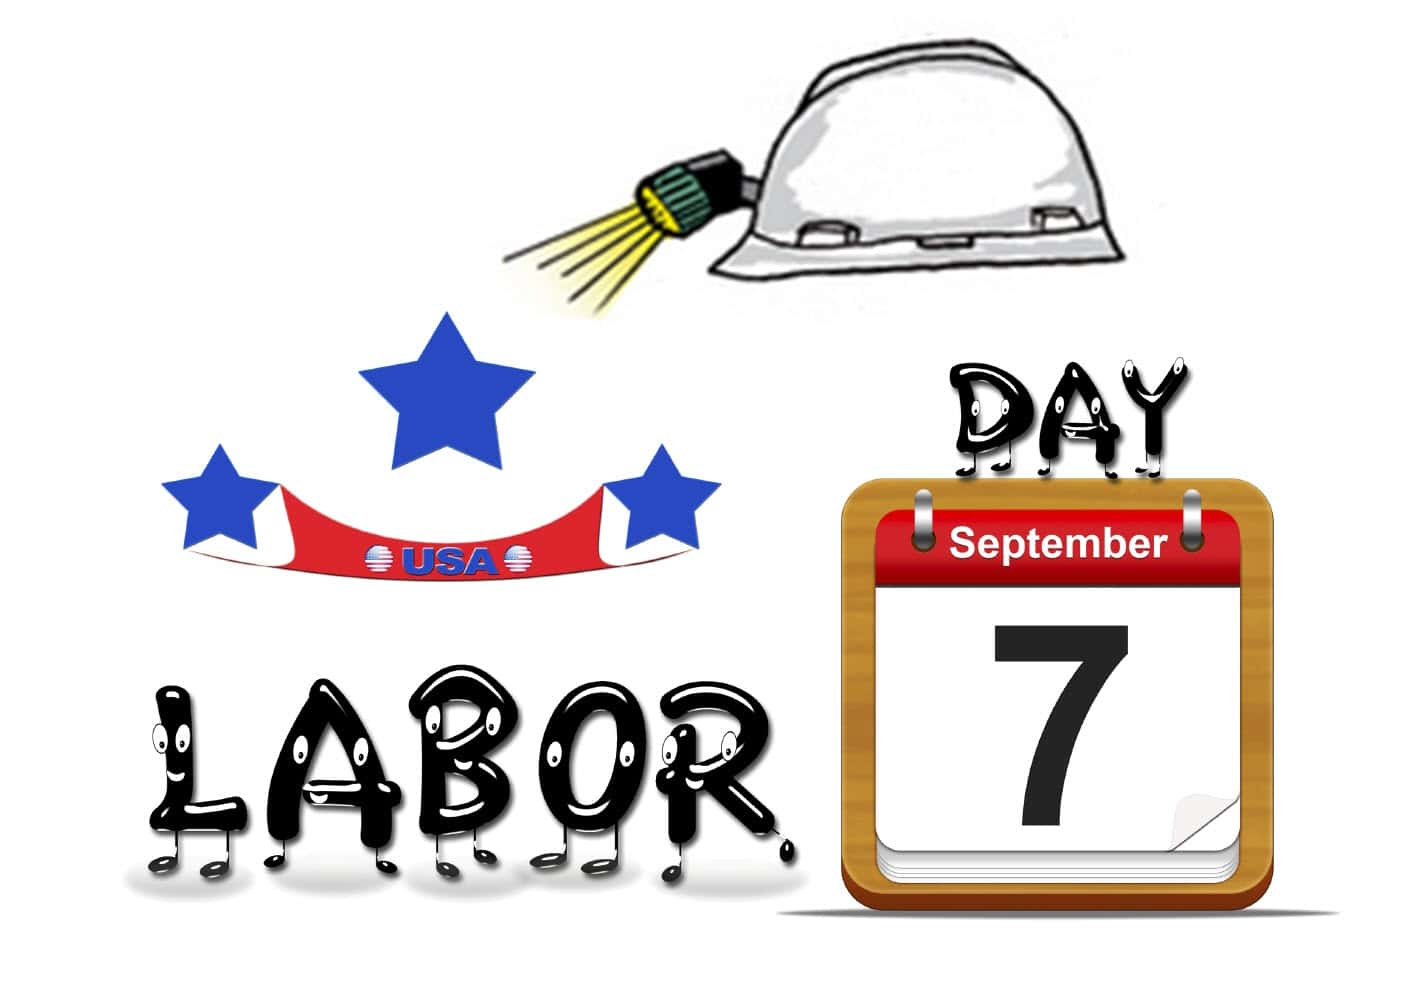 A salute to all those hard workers in the mining industry labor day for mining buycottarizona Choice Image